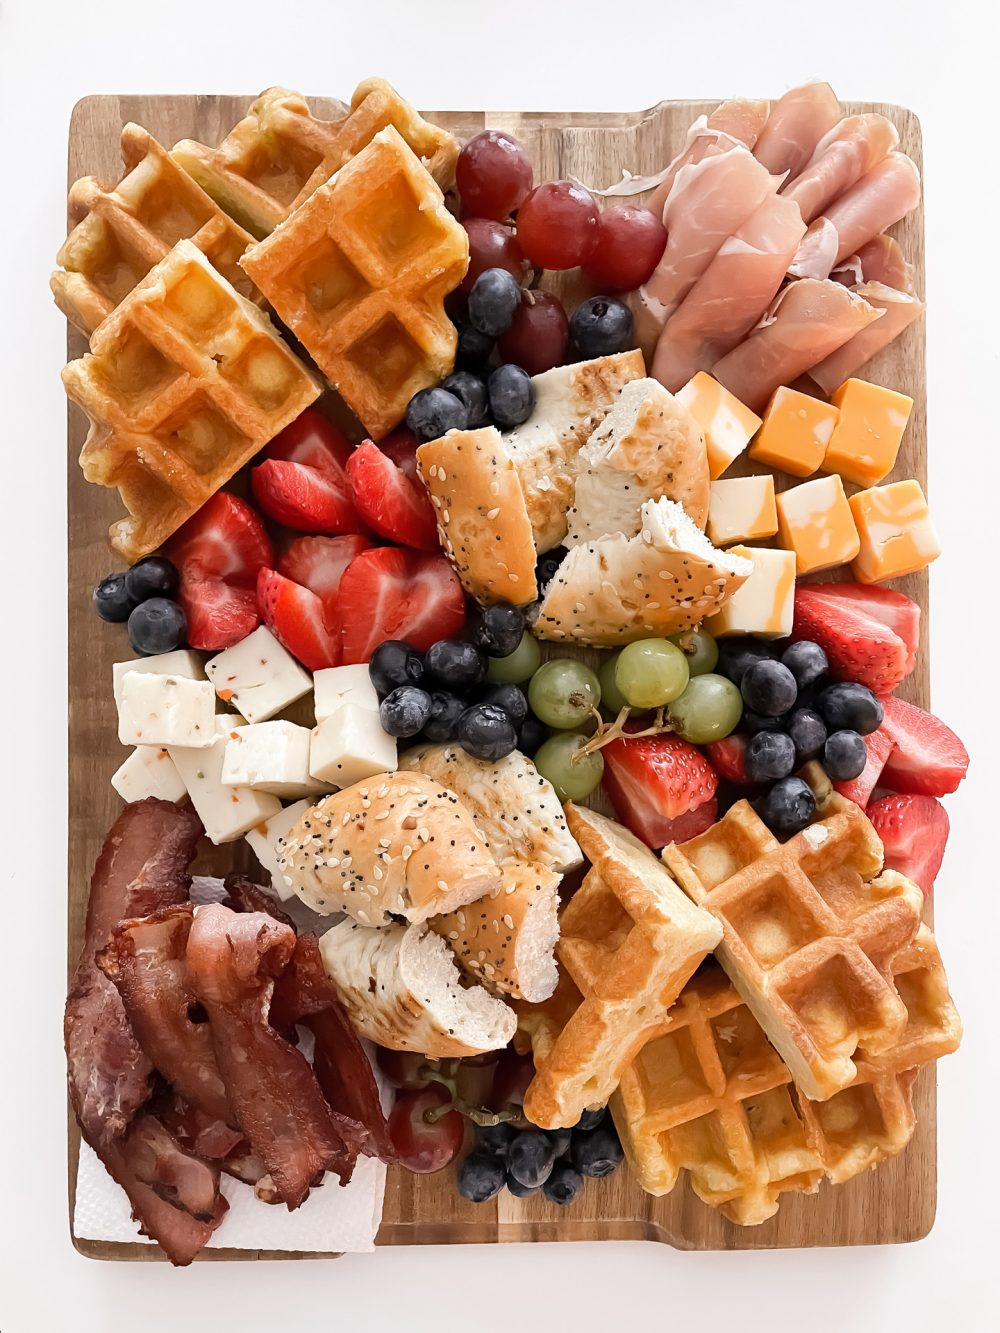 Easy breakfast idea - brunch board with waffles, strawberries, bagels, bacon, proscuitto, cheeses and more!